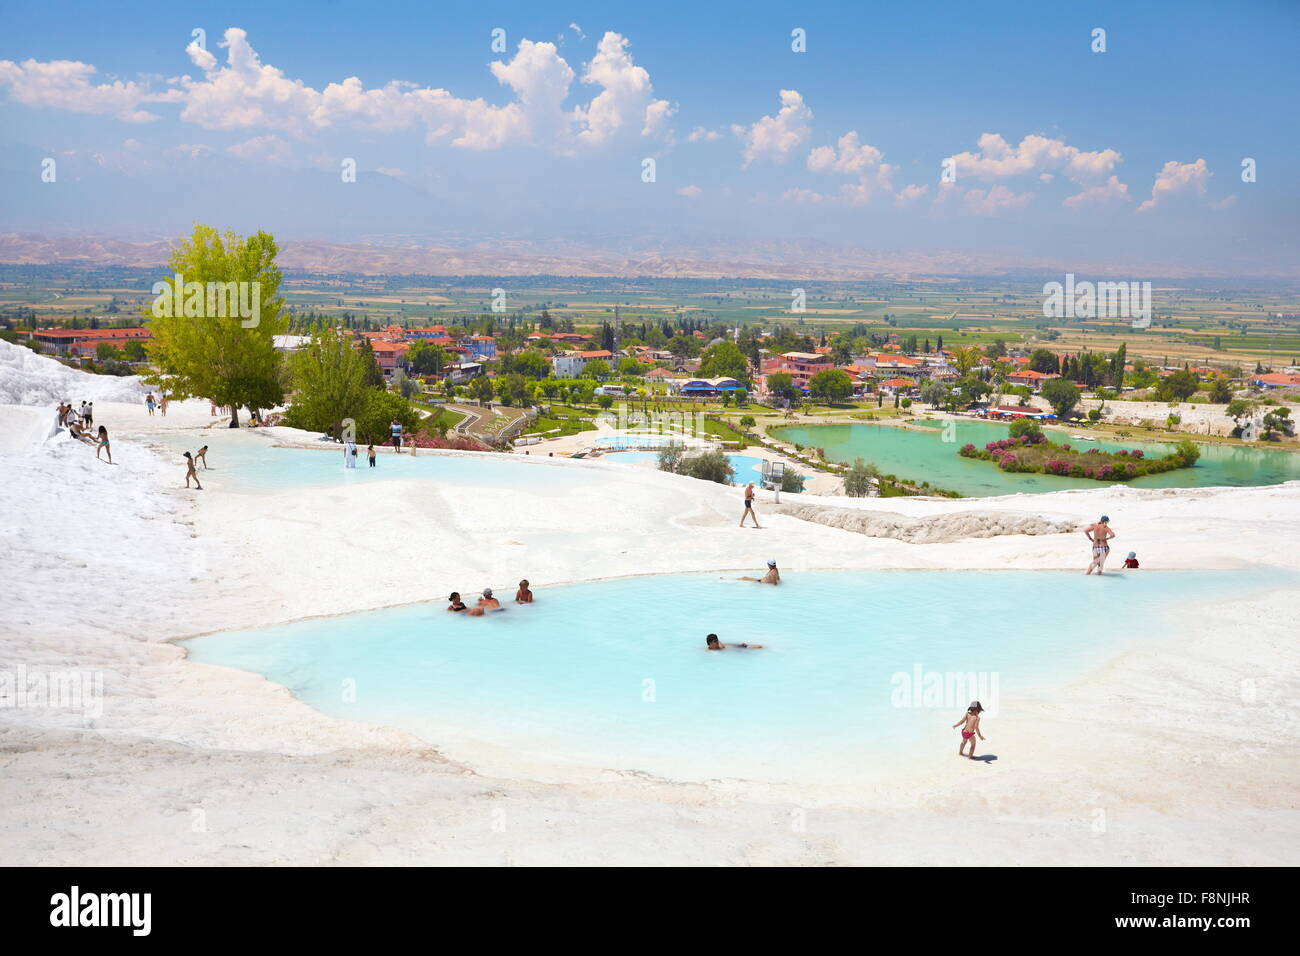 Pamukkale, limestone terraces, Turkey - Stock Image